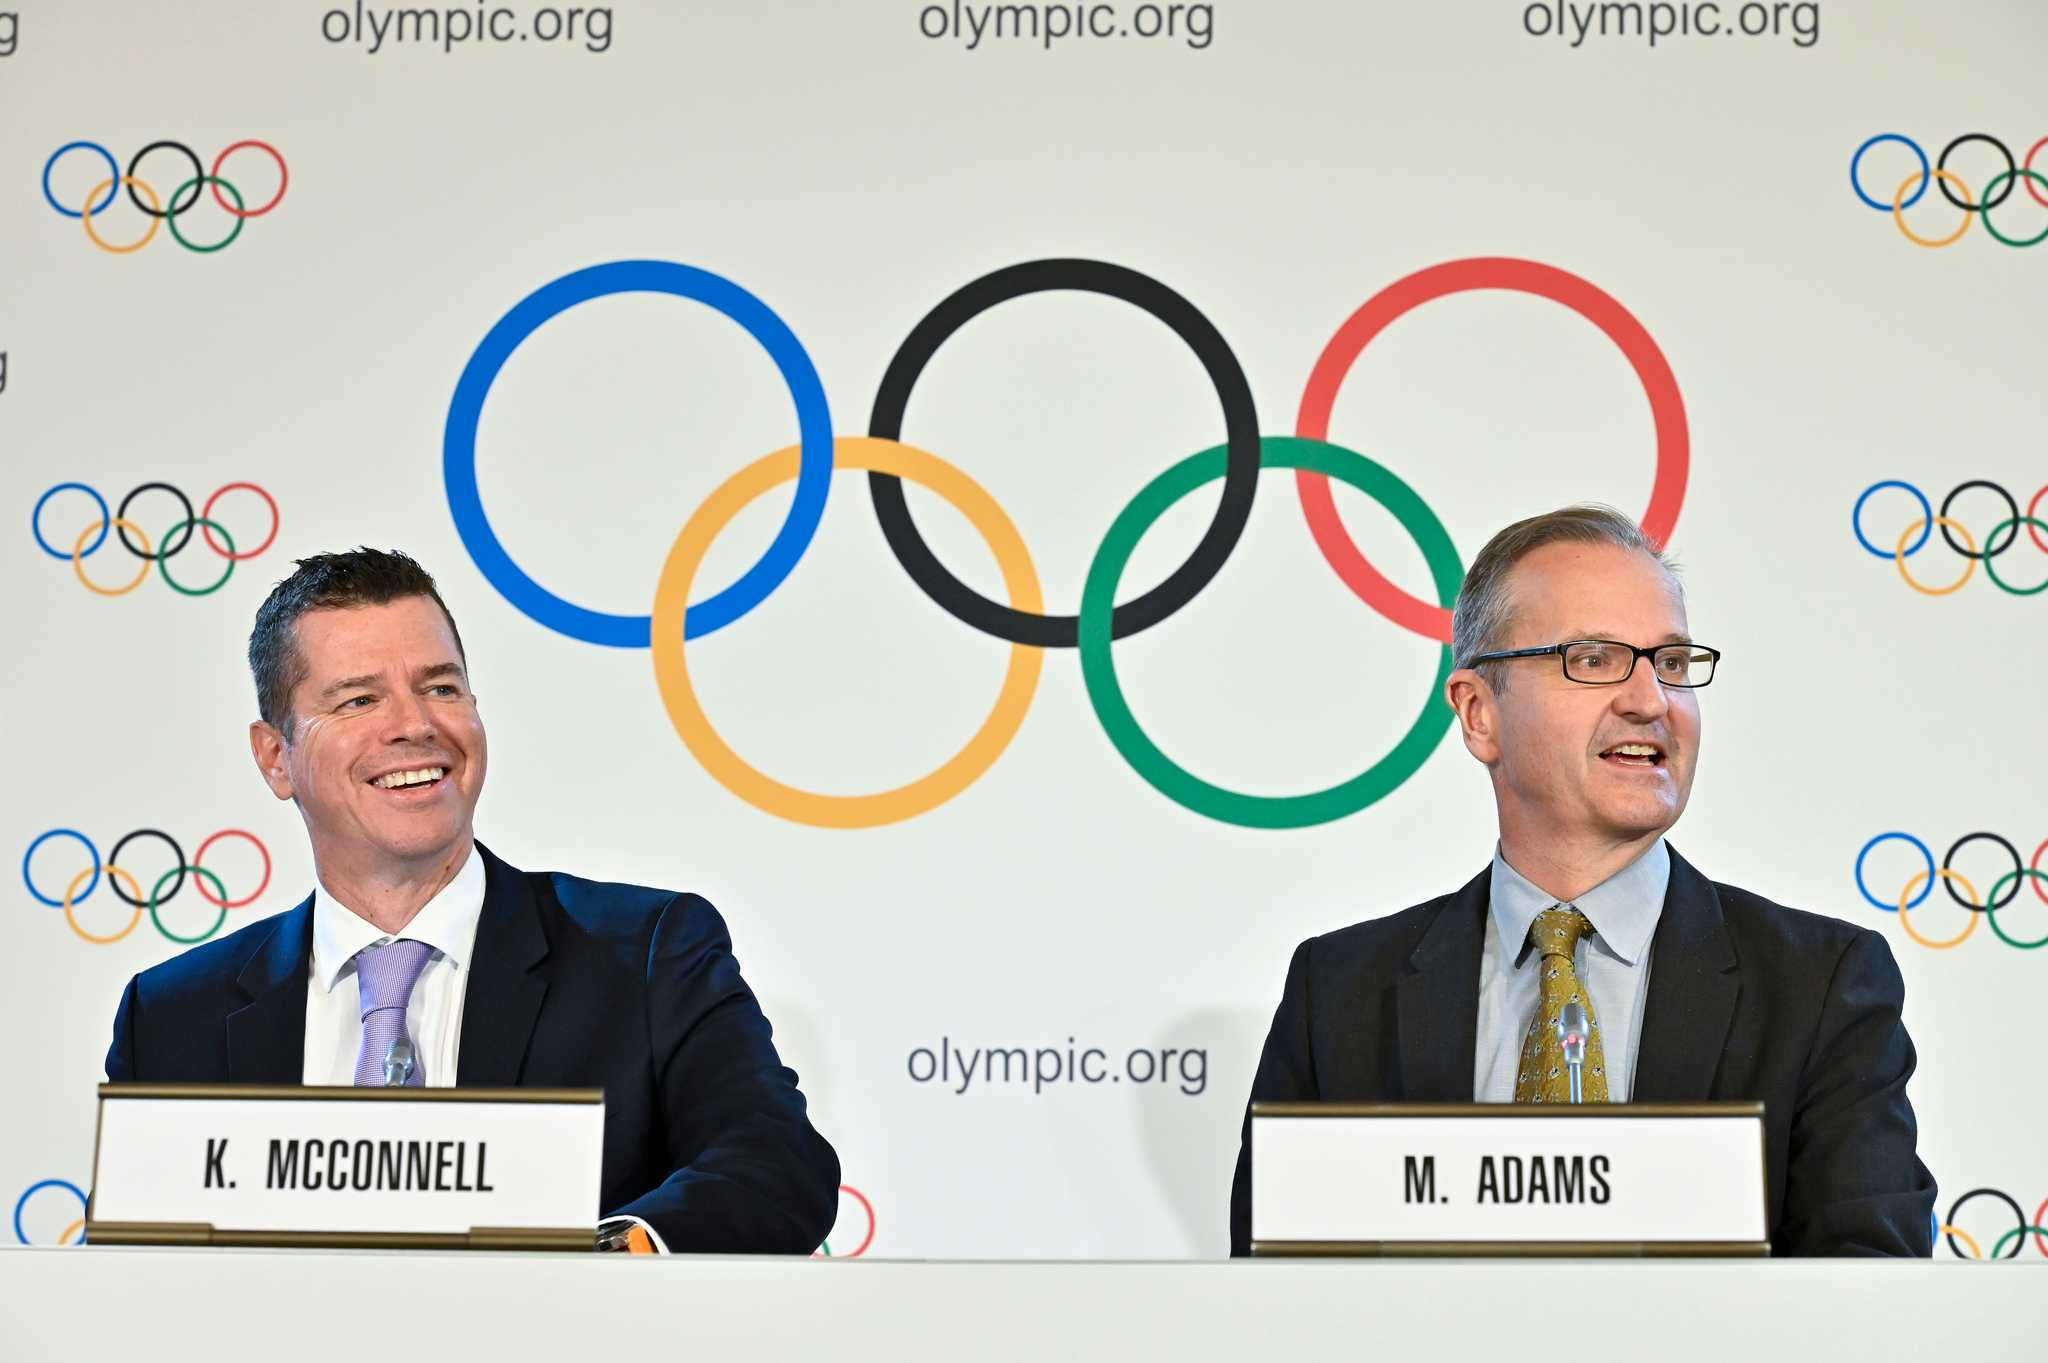 A good day for weightlifting: IOC lifts status of 'conditional inclusion' for Paris 2024